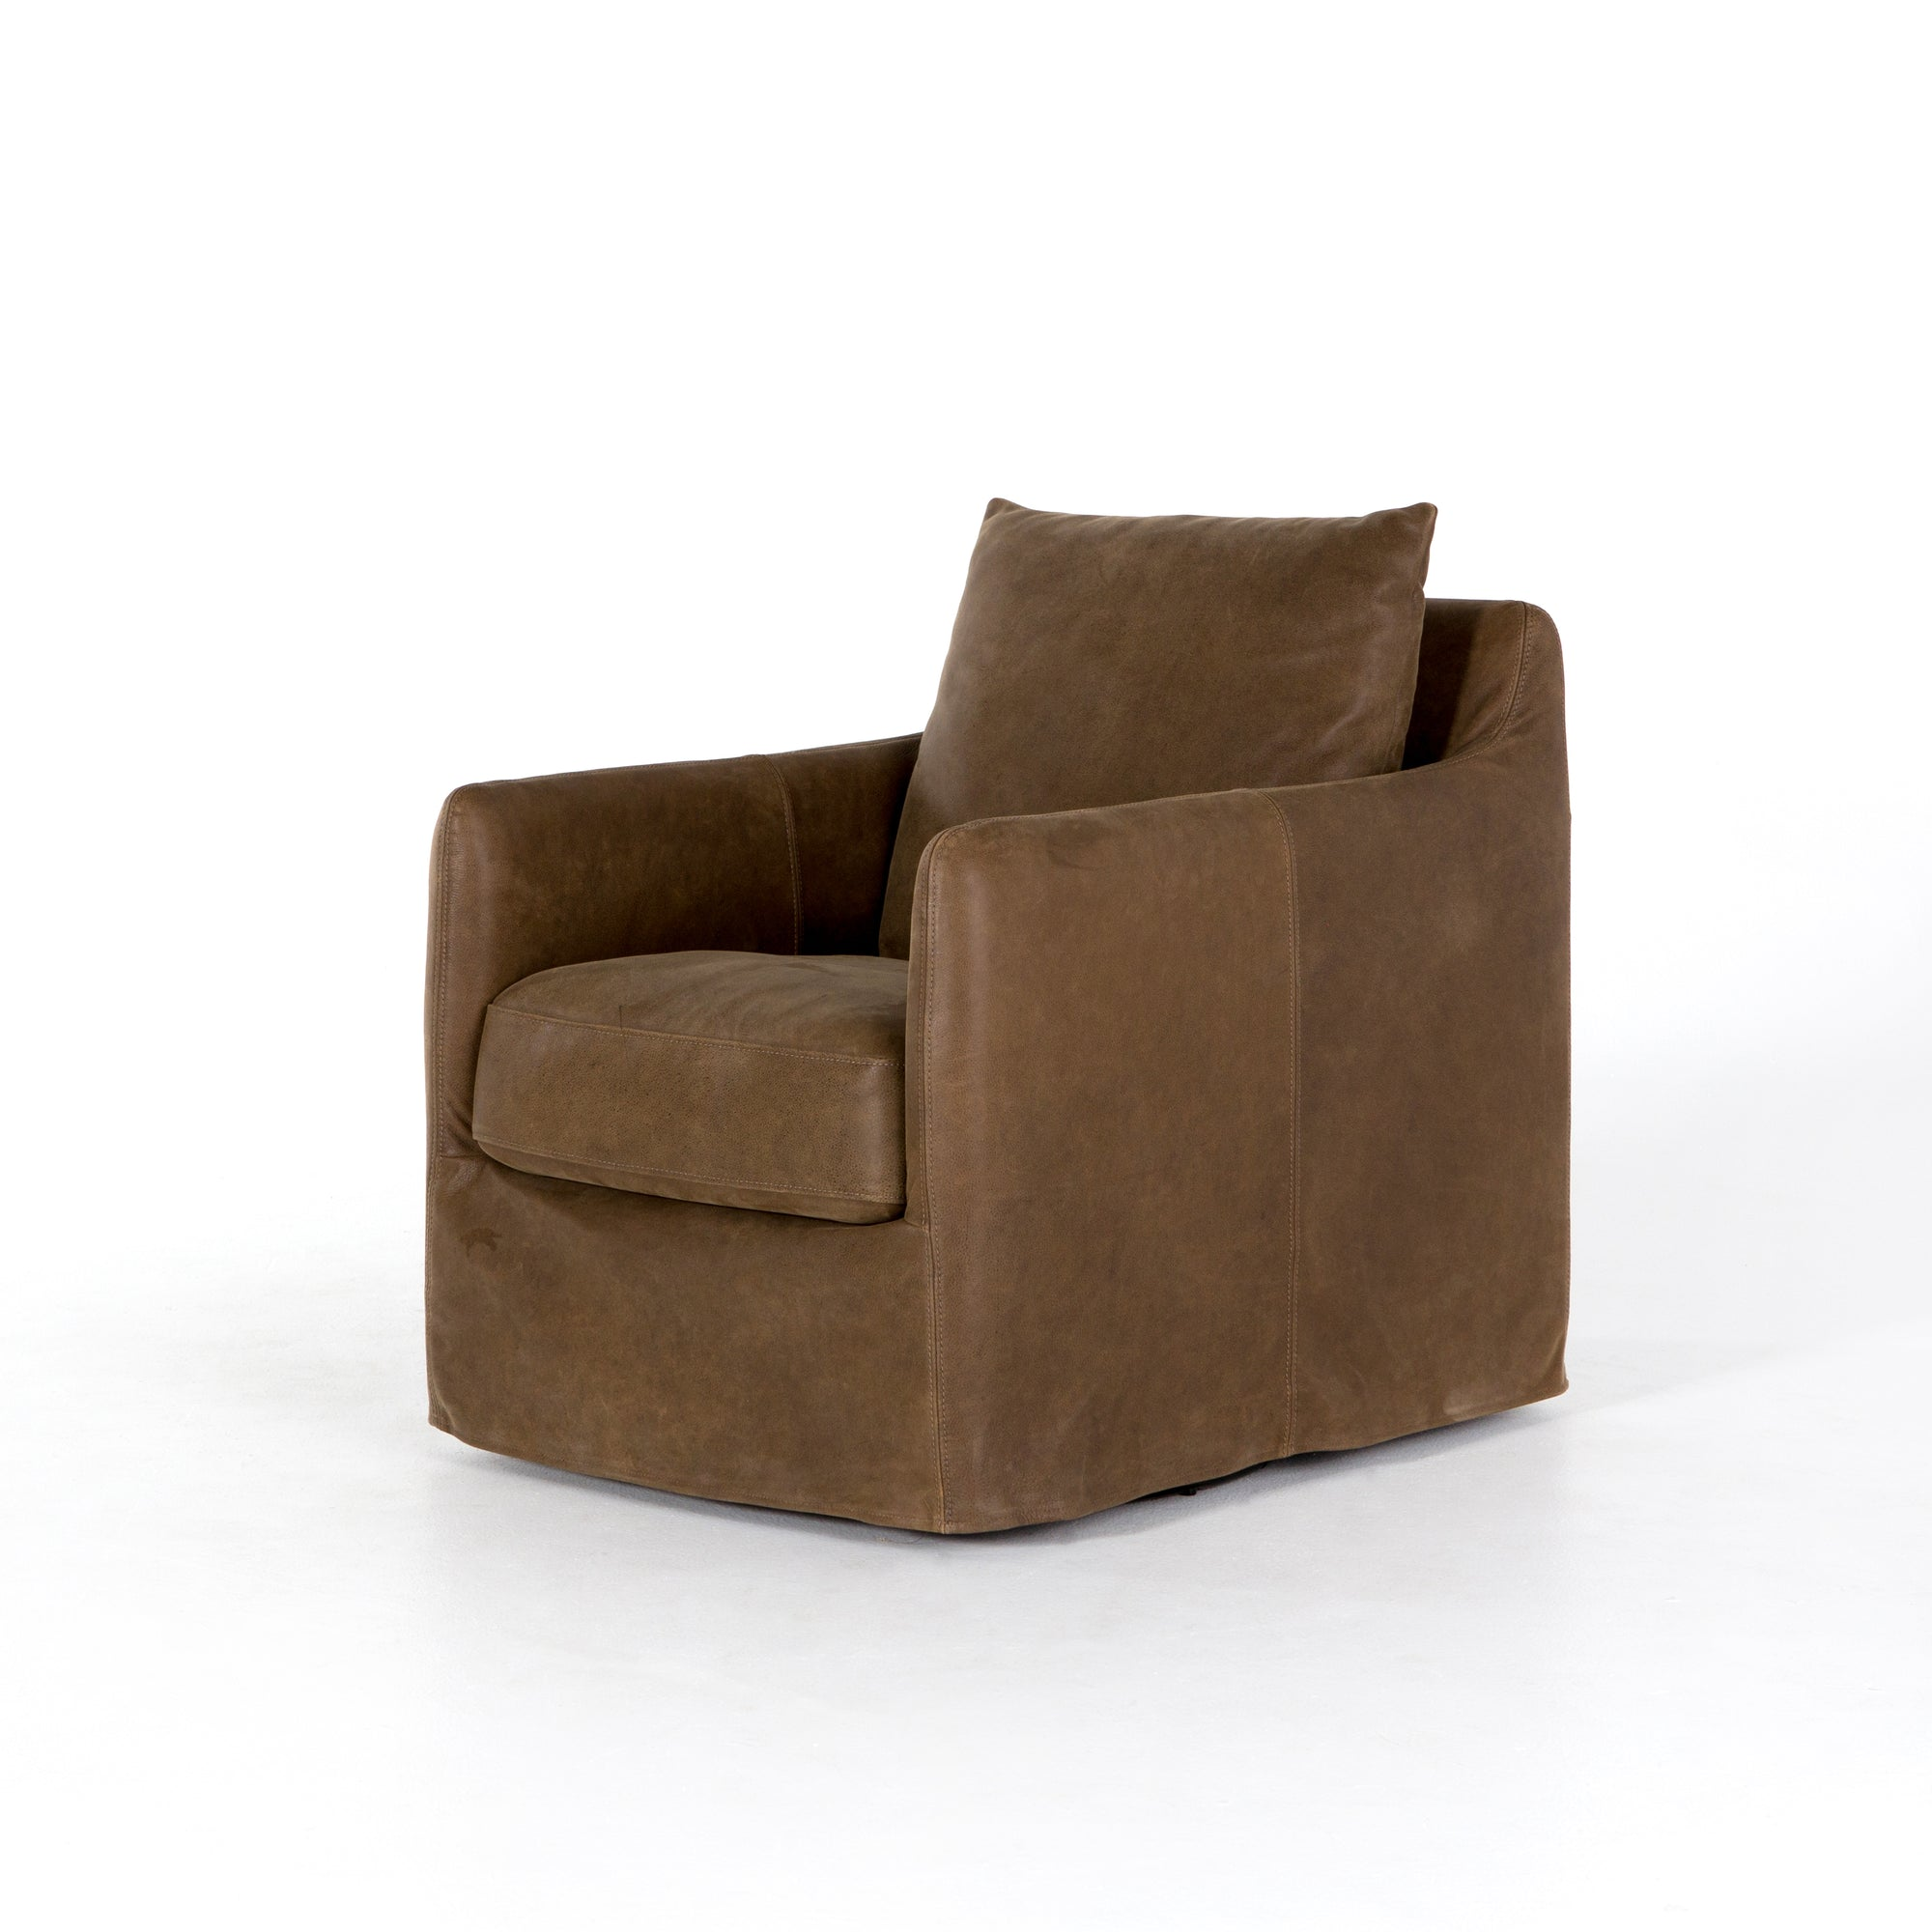 Banks Swivel Chair - Umber Grey